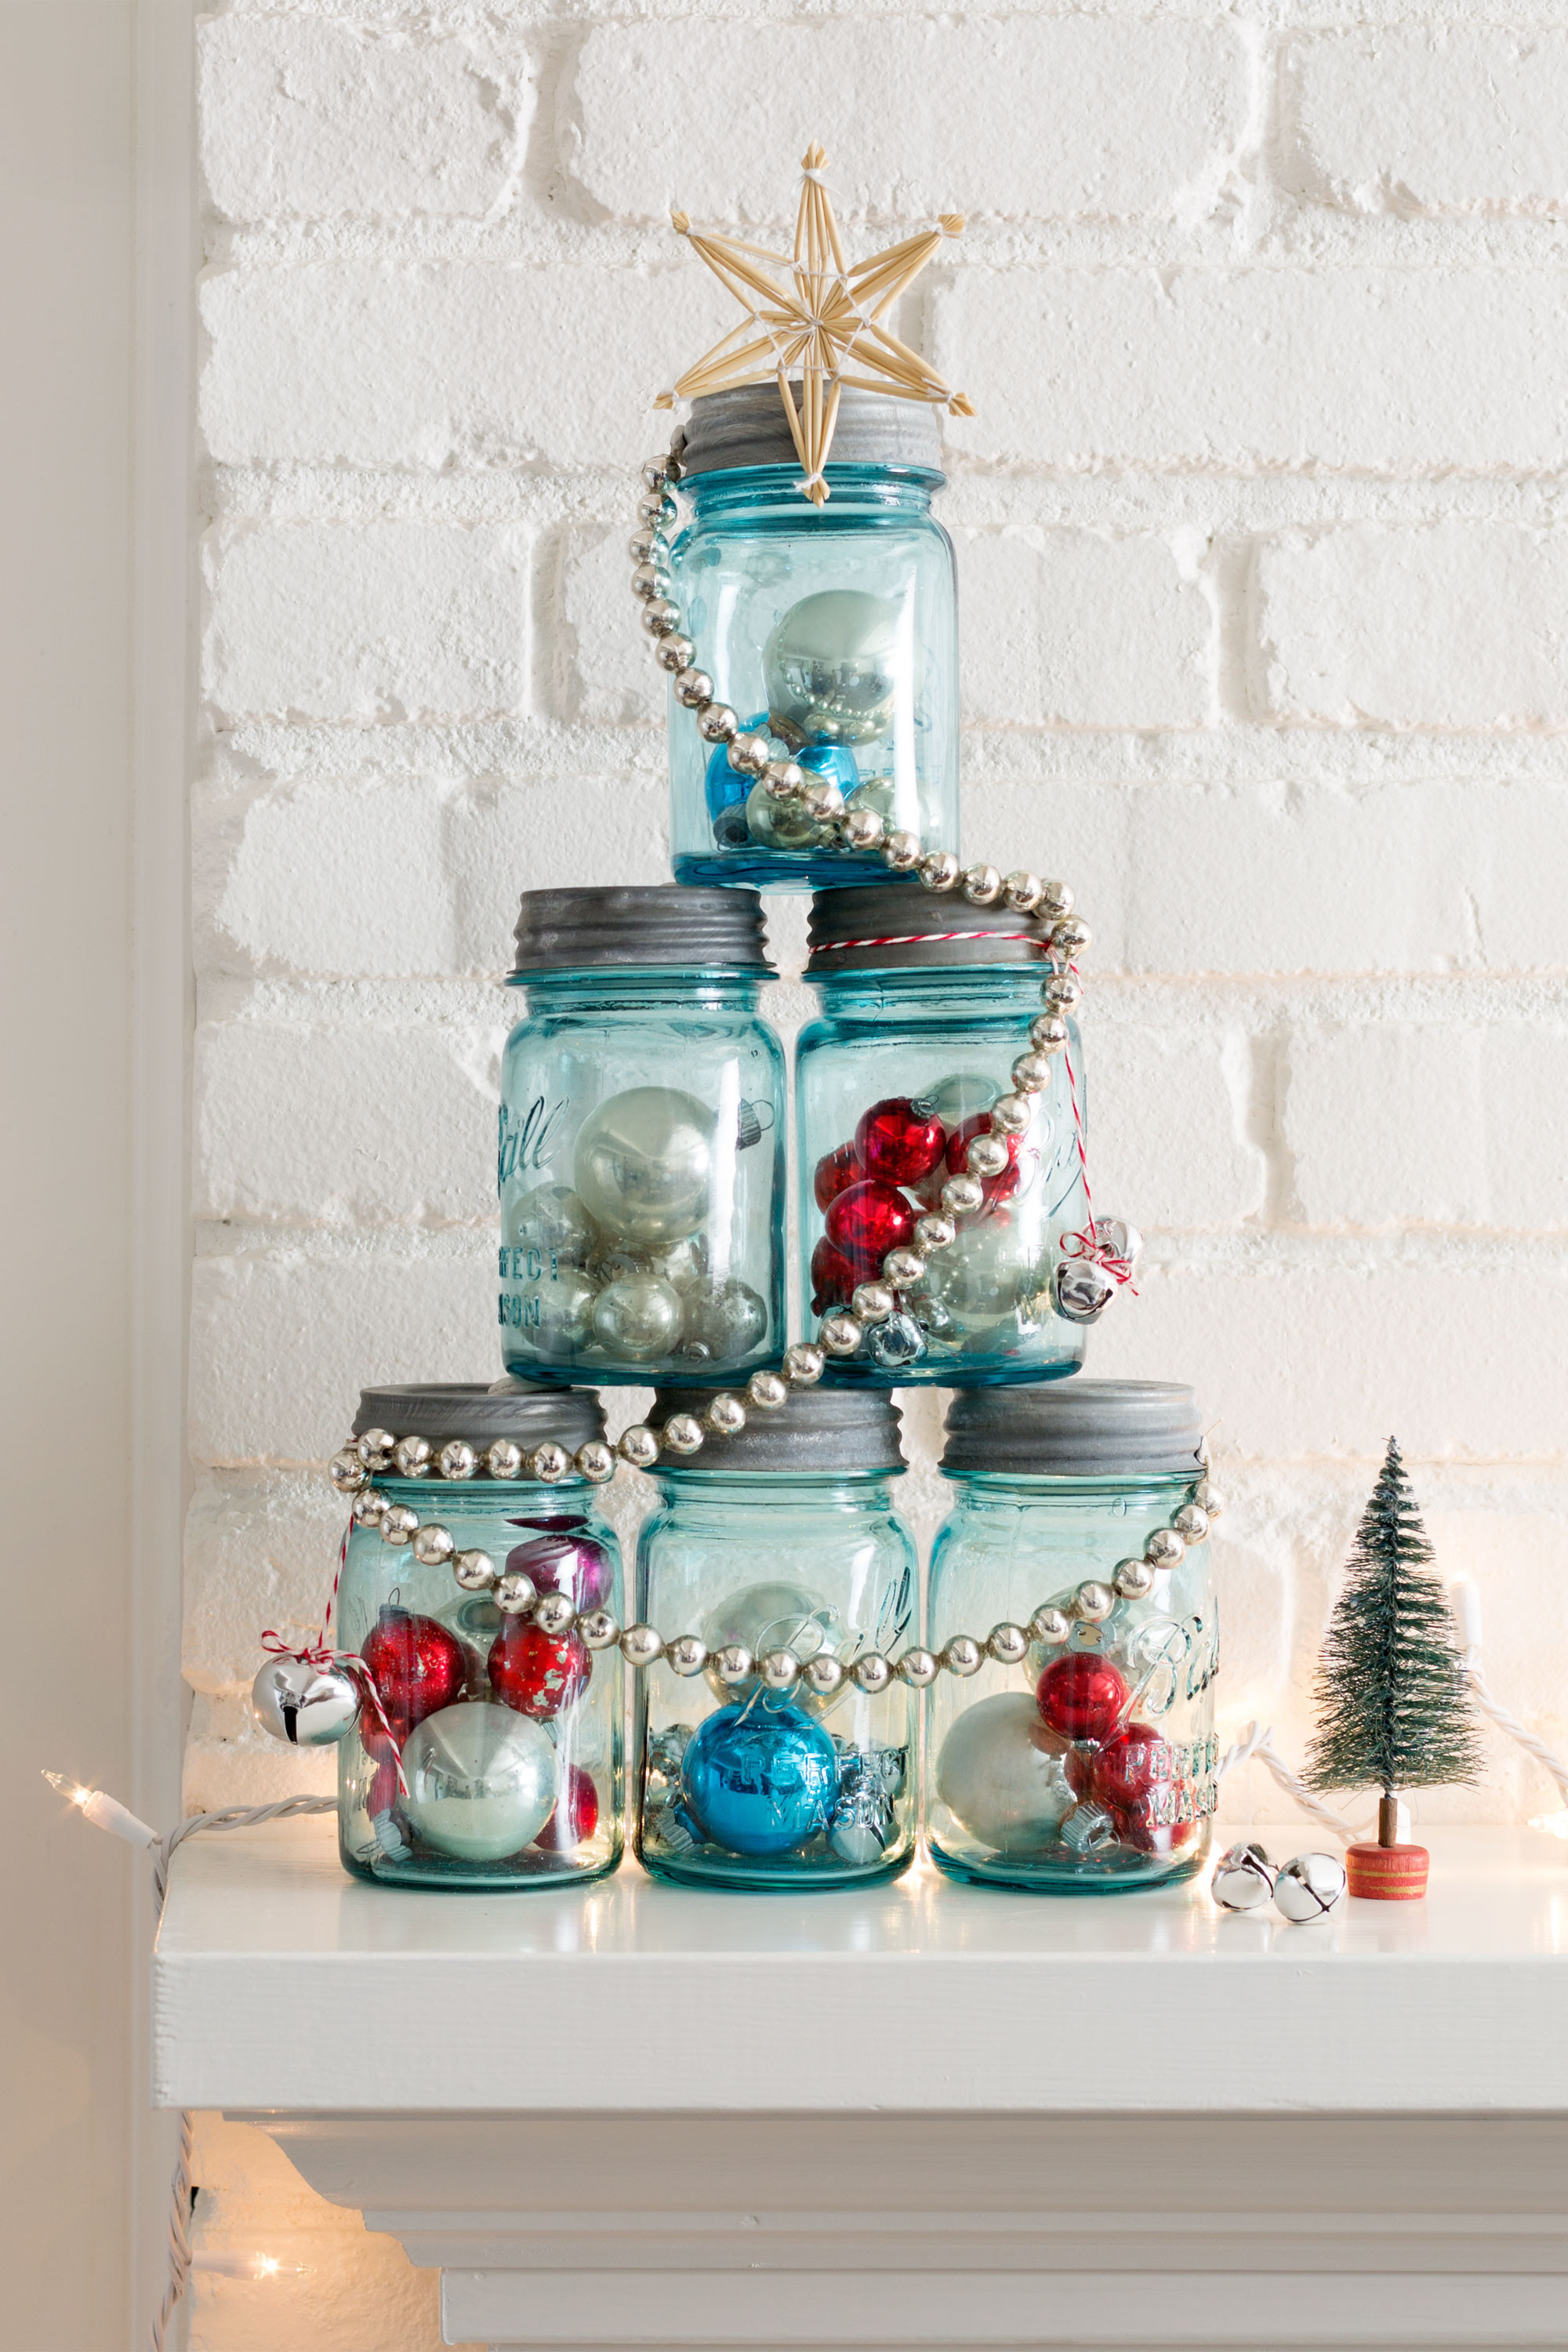 Best ideas about DIY Christmas Decor . Save or Pin 37 DIY Homemade Christmas Decorations Christmas Decor Now.